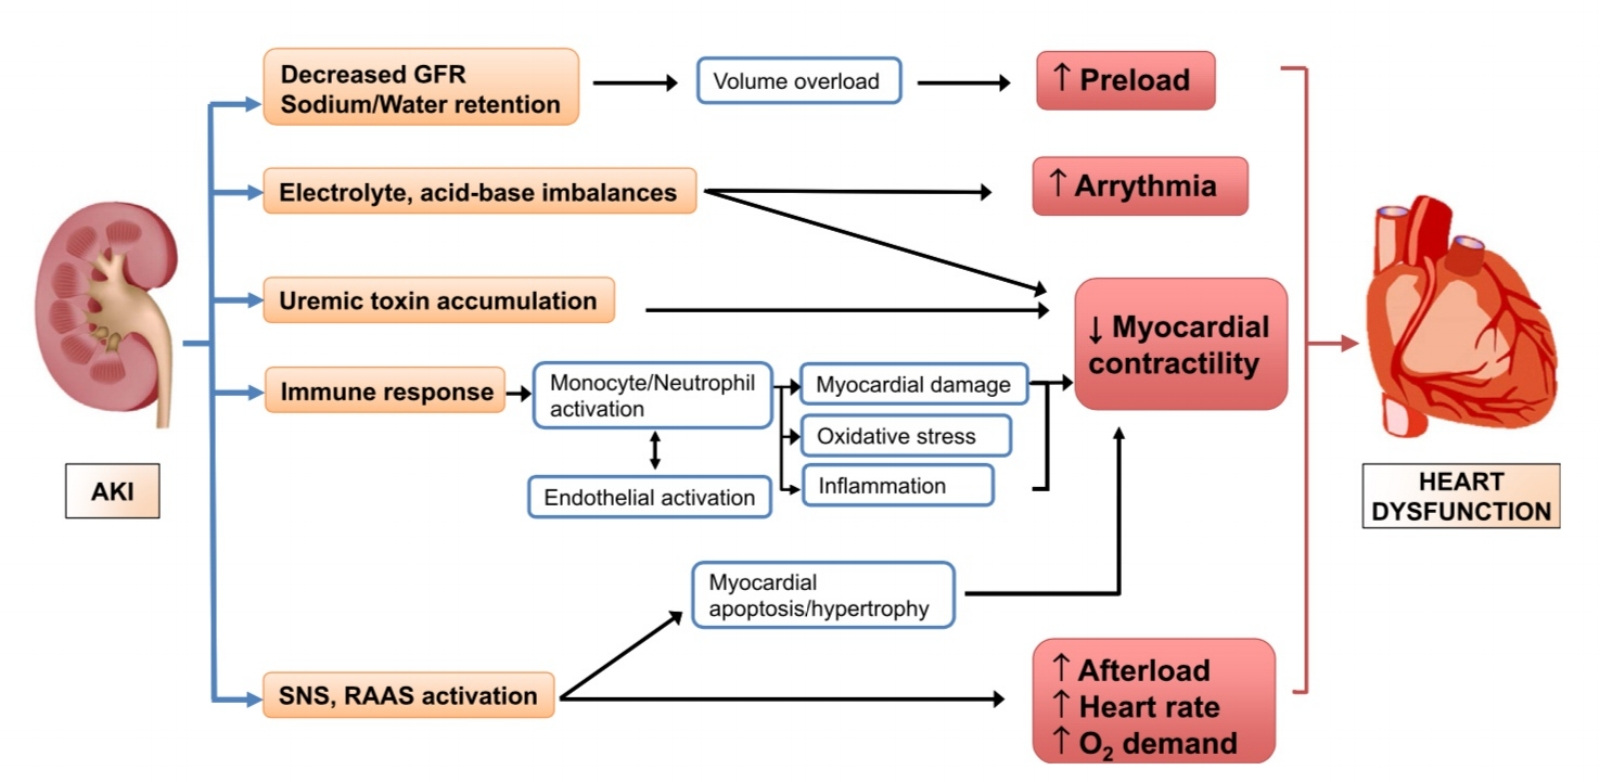 Kidney-Heart Axis (adapted from Lee et al. 2018)